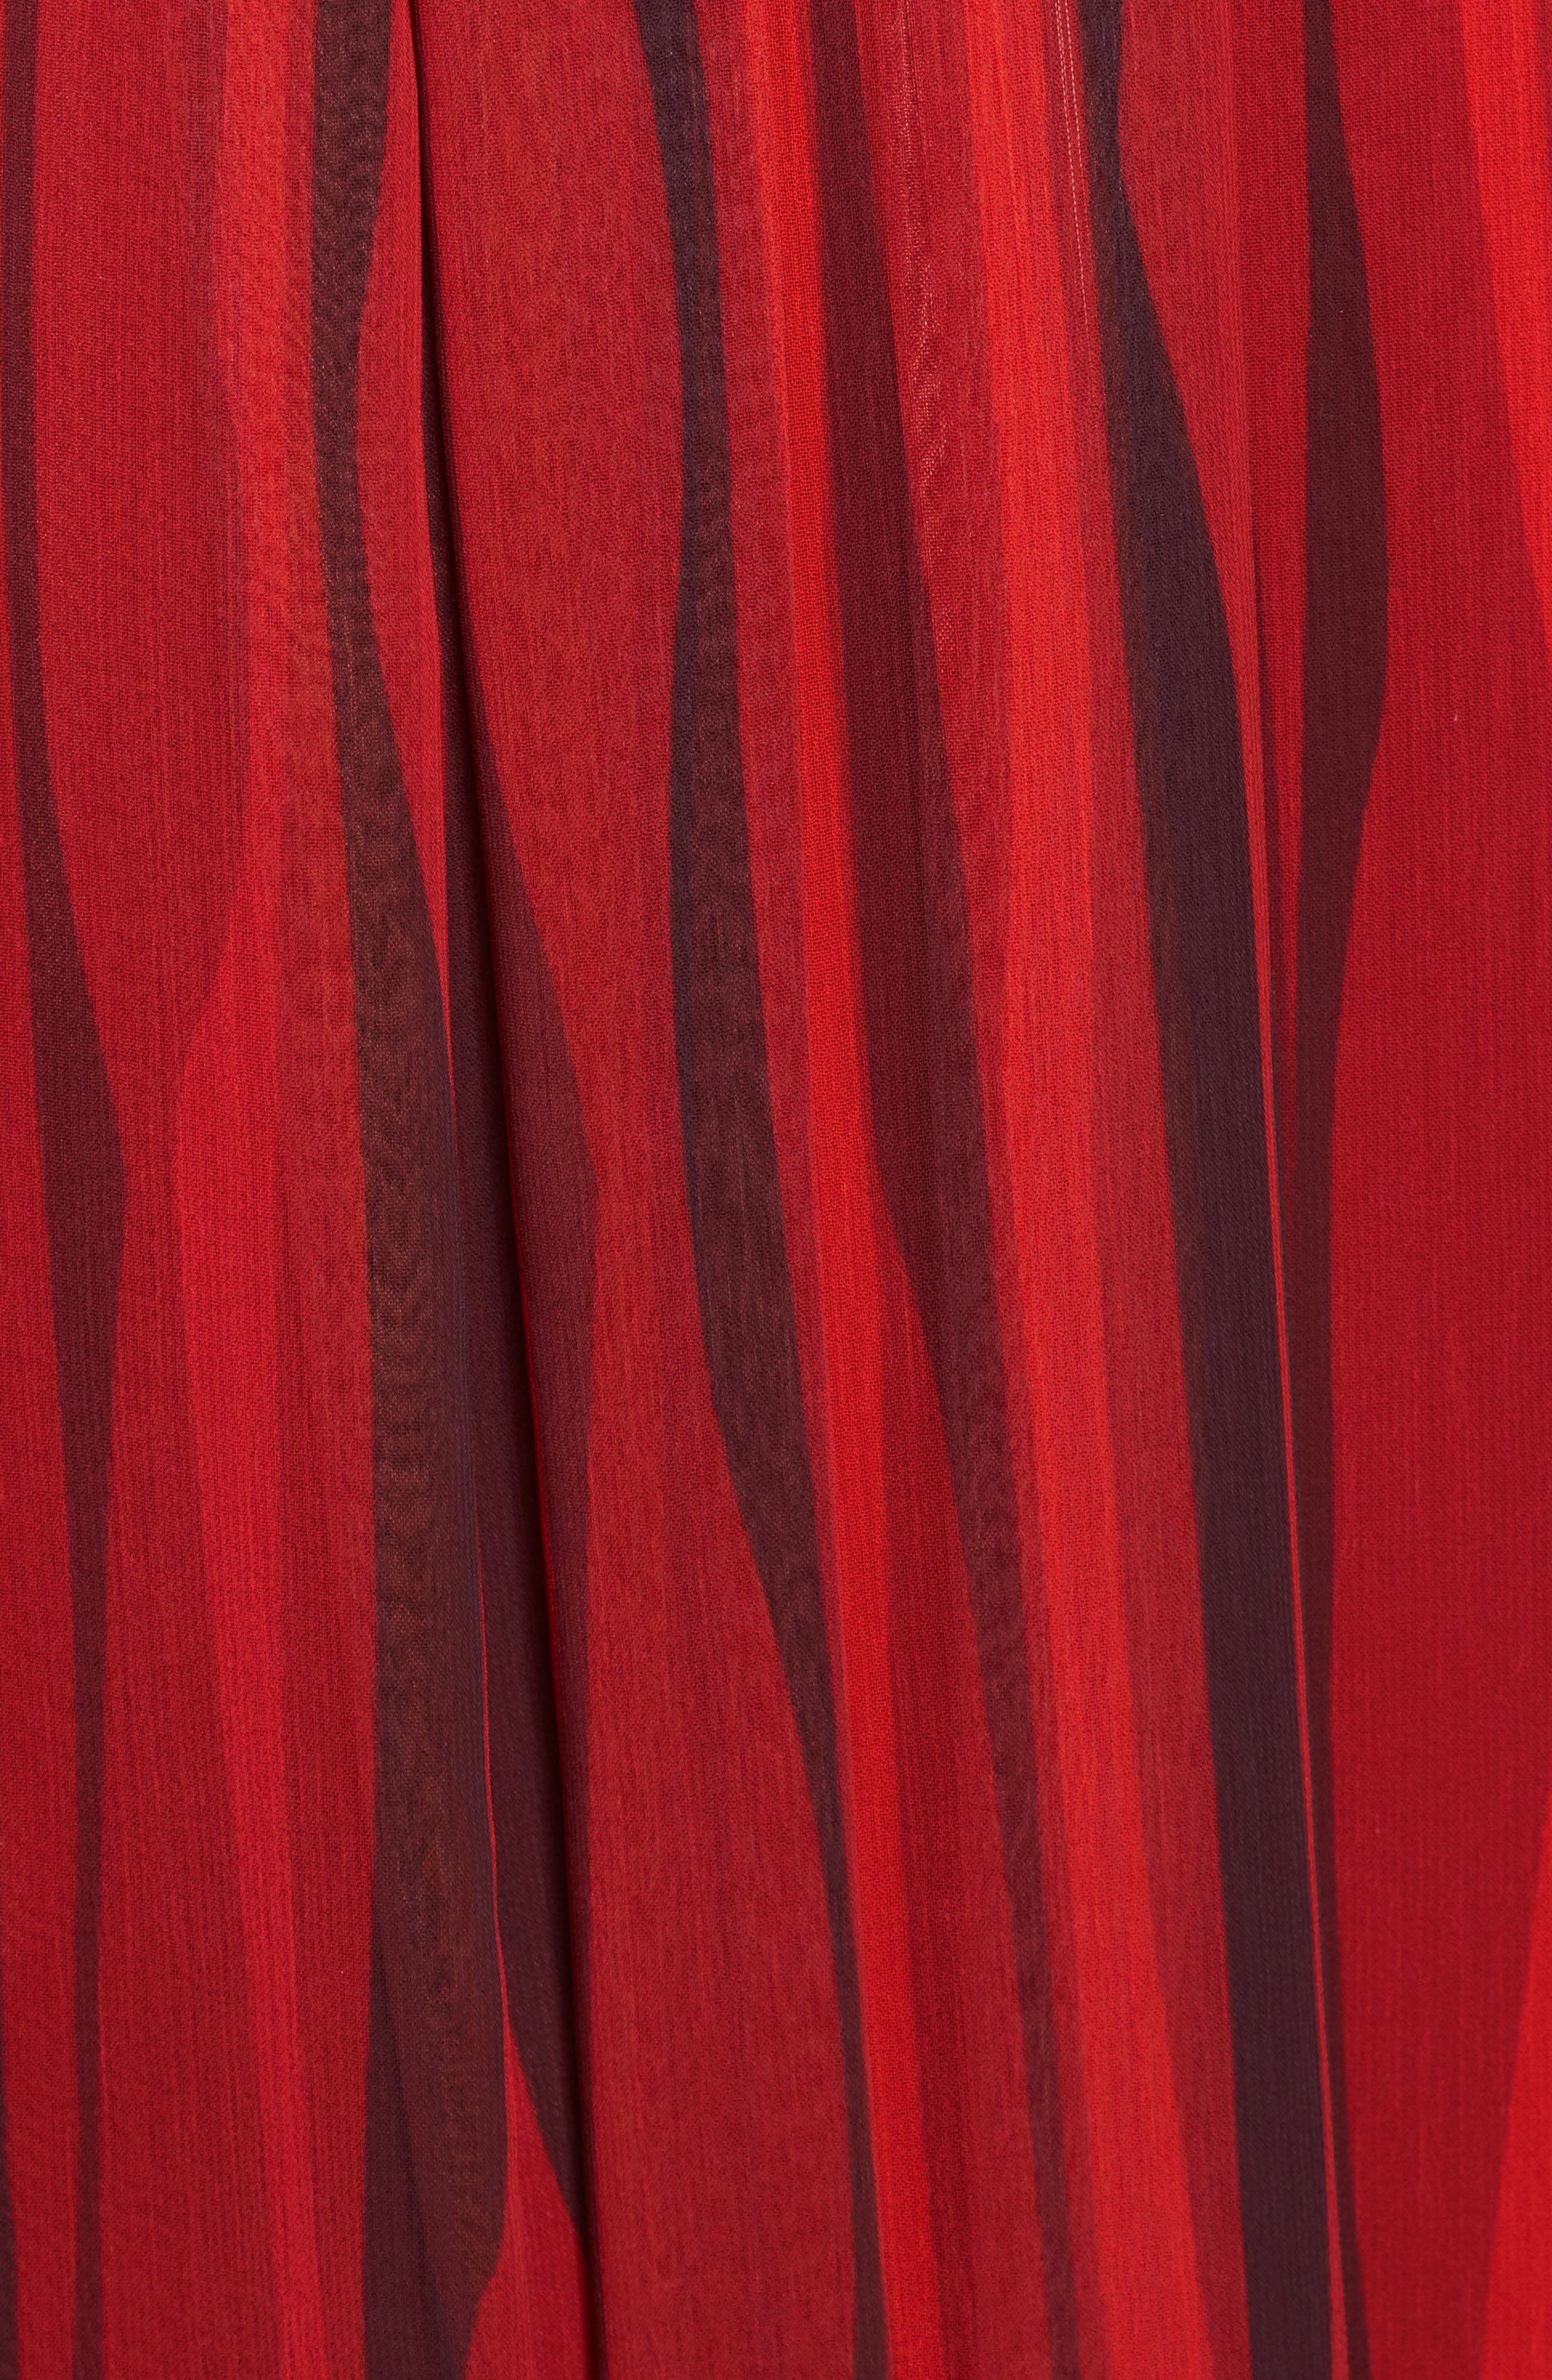 Fit & Flare Dress,                             Alternate thumbnail 5, color,                             Titian Red/ Black Combo